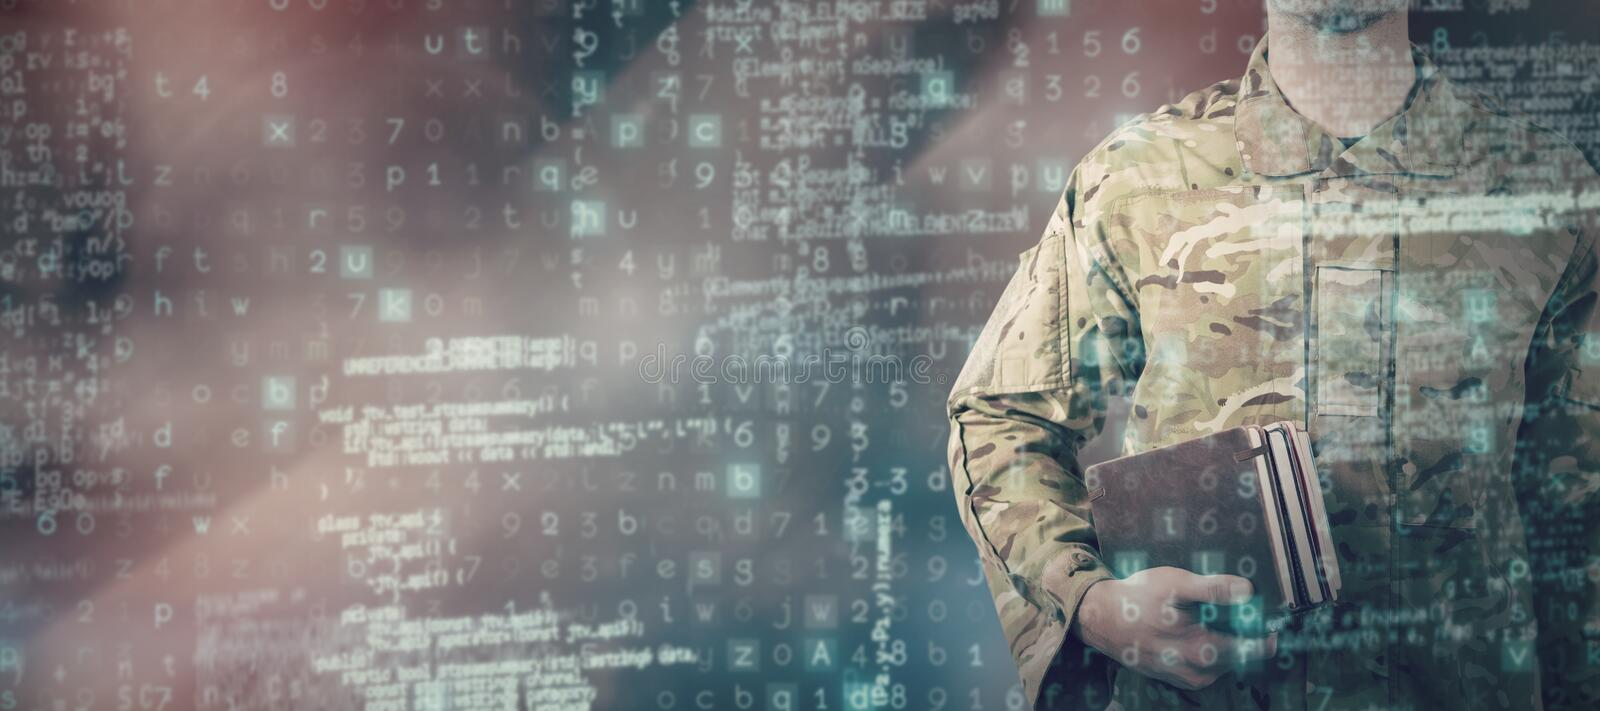 Composite image of mid section of soldier holding books stock images